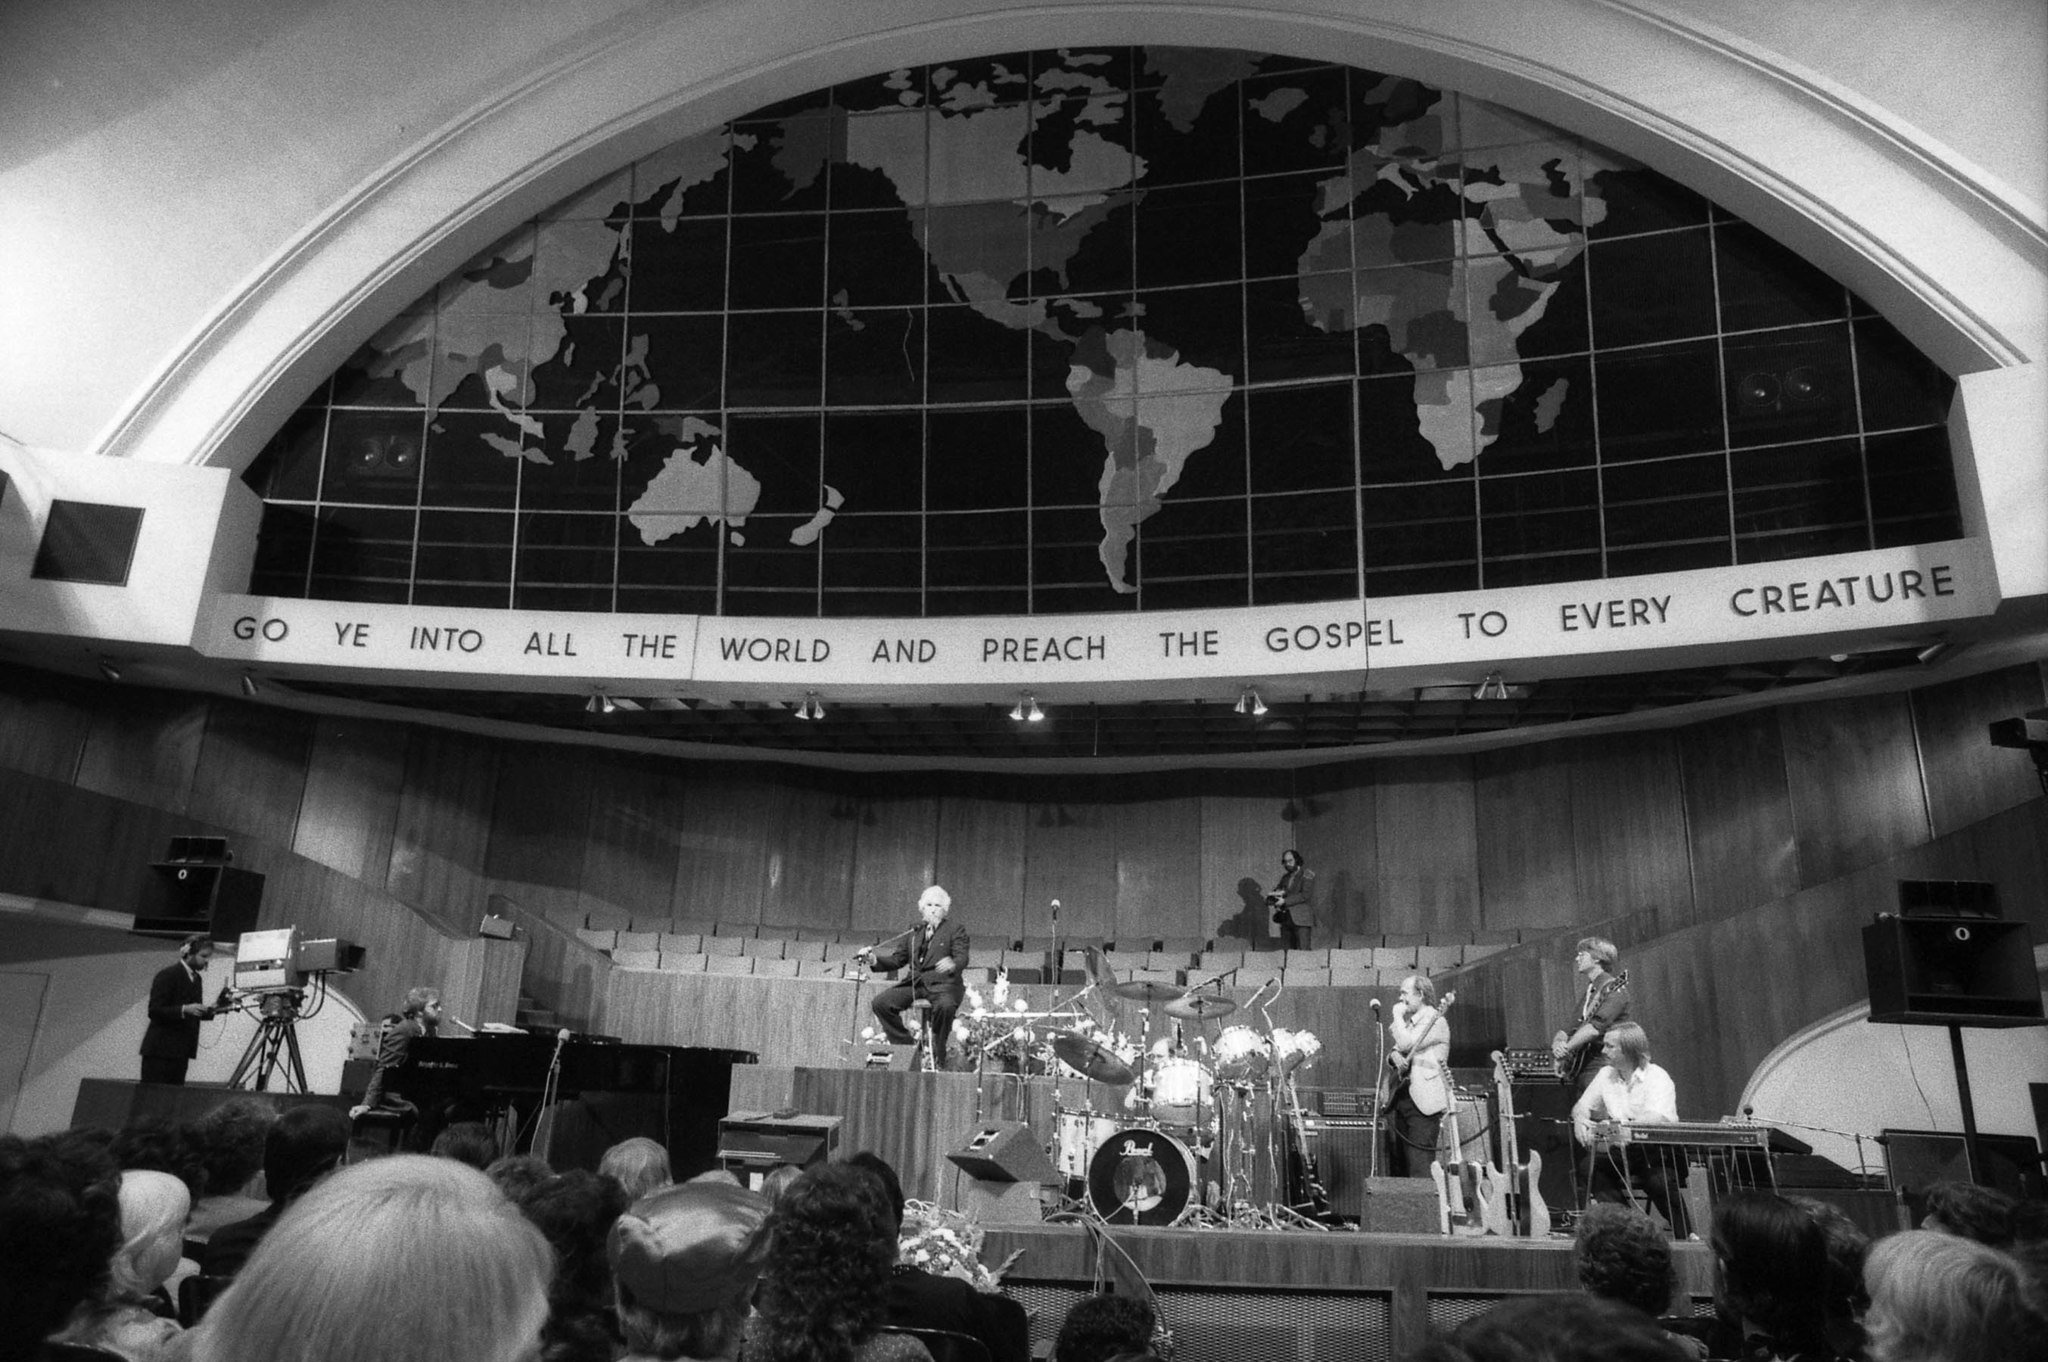 July 6, 1986: Dr. Gene Scott on stage of Church of the Open Door in Los Angeles. This image is from